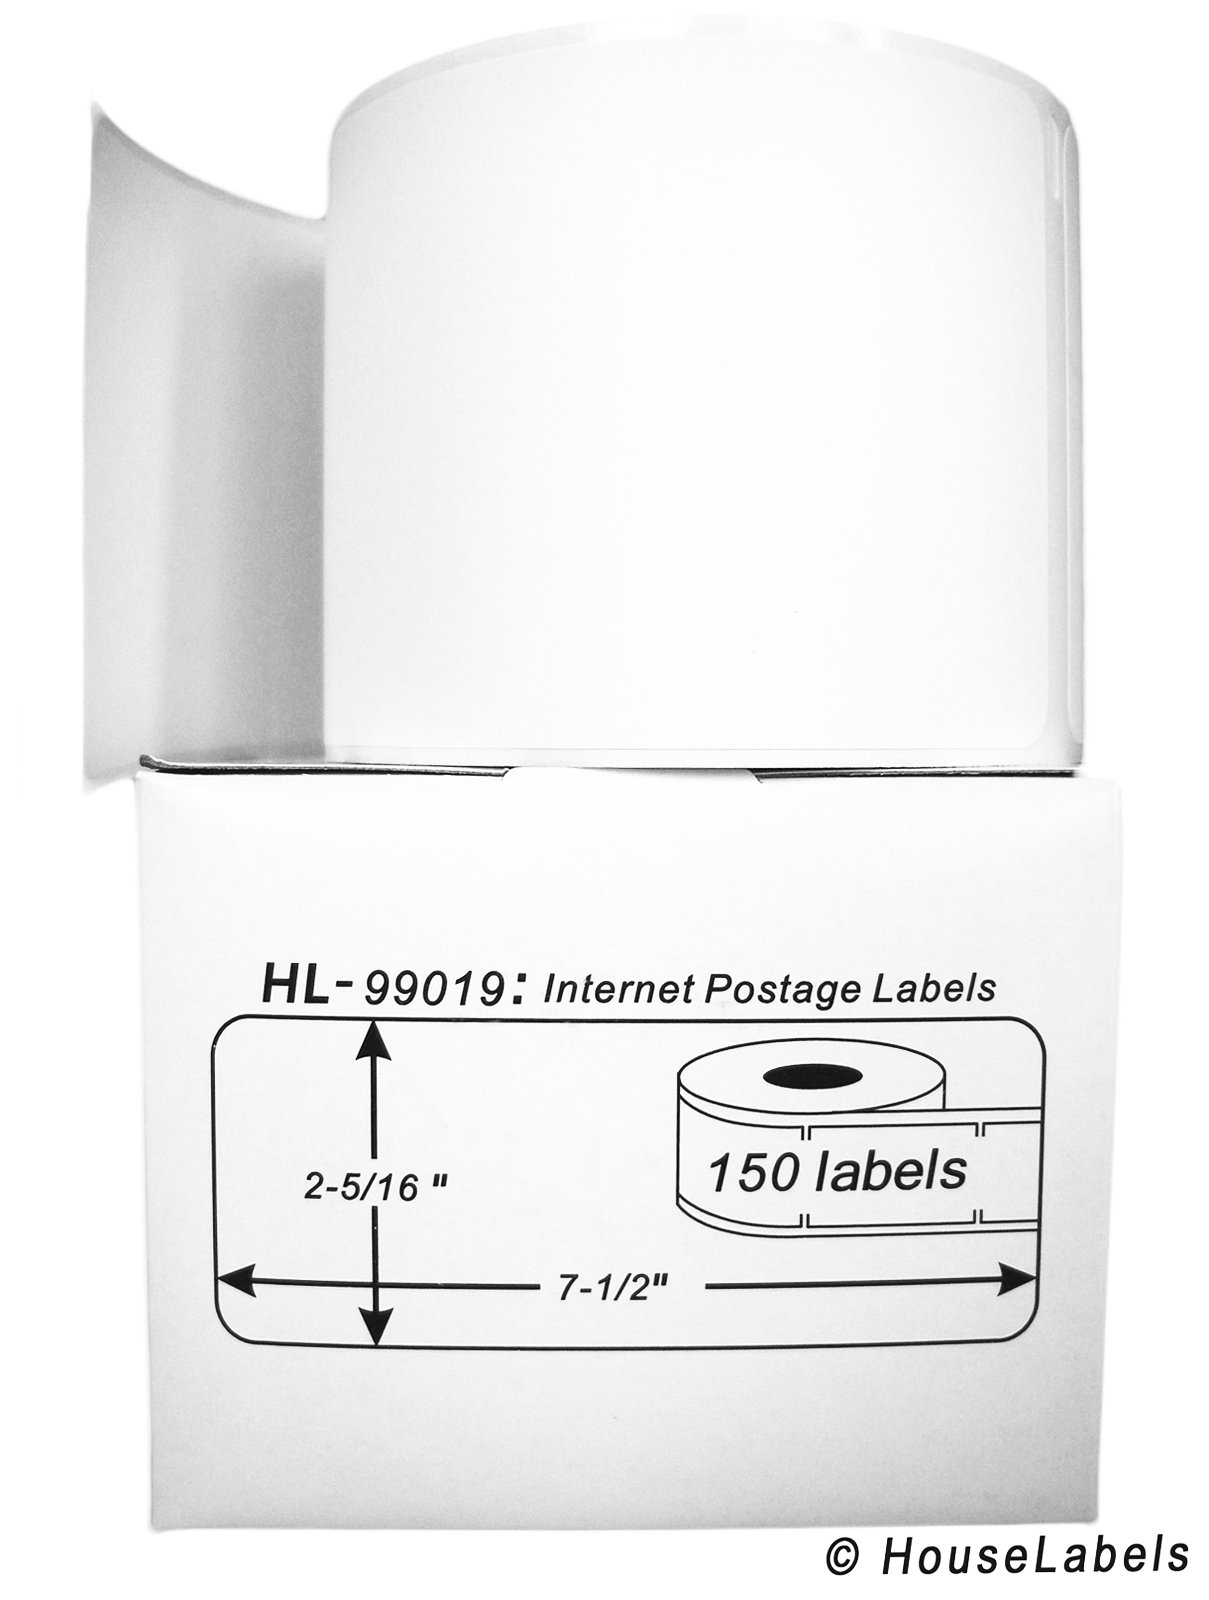 50 Rolls; 150 Labels per Roll of DYMO-Compatible 99019 1-Part Internet Postage Labels (2-5/16'' x 7-1/2'') - BPA Free! by HouseLabels